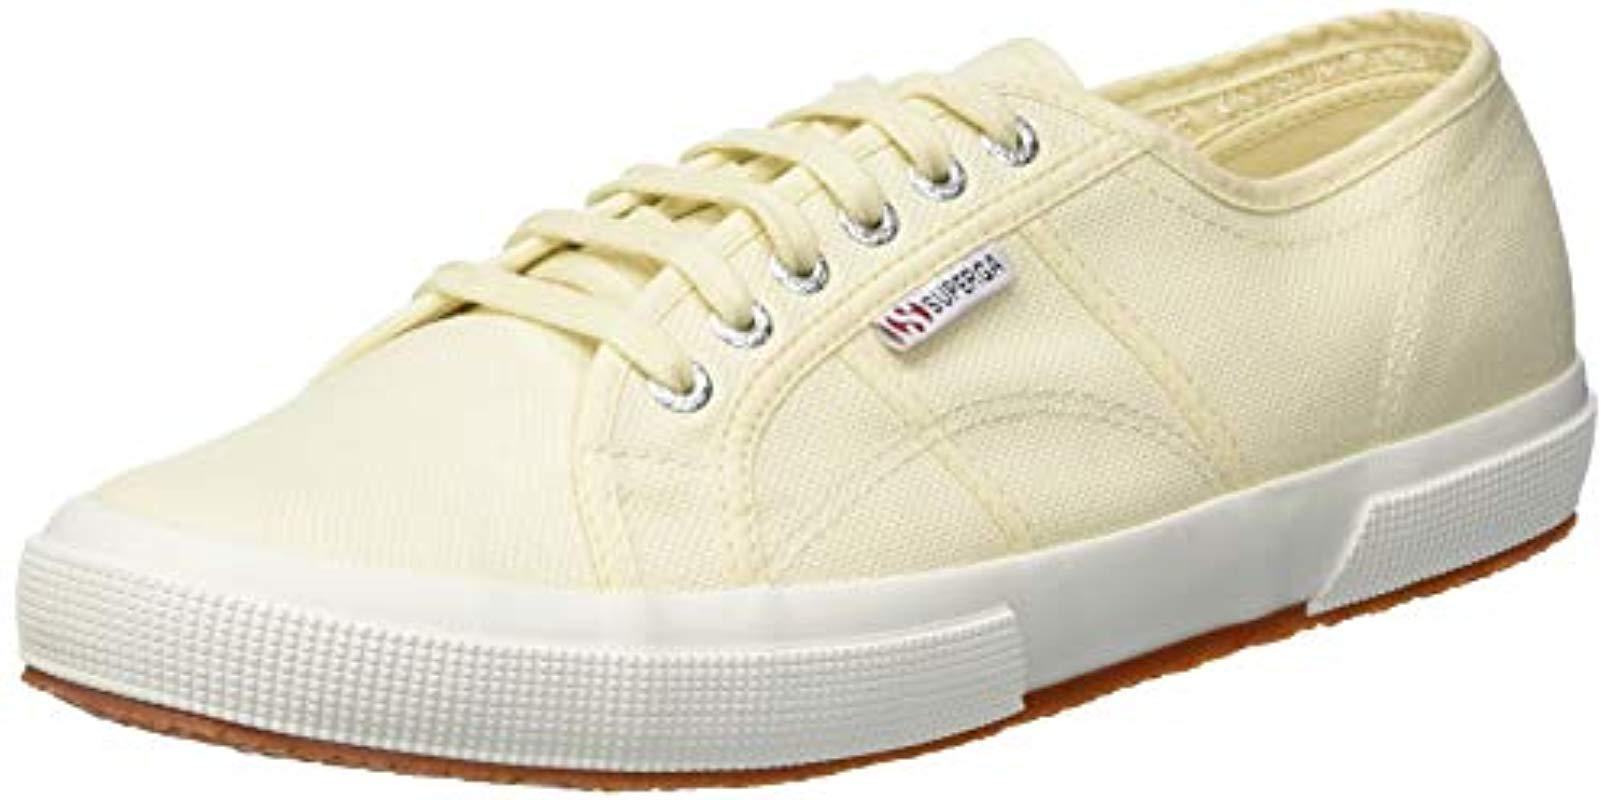 93681a3dd0bf2 Superga 2750 Cotu Classic, Unisex Adults' Low-top Sneakers, Ivory ...